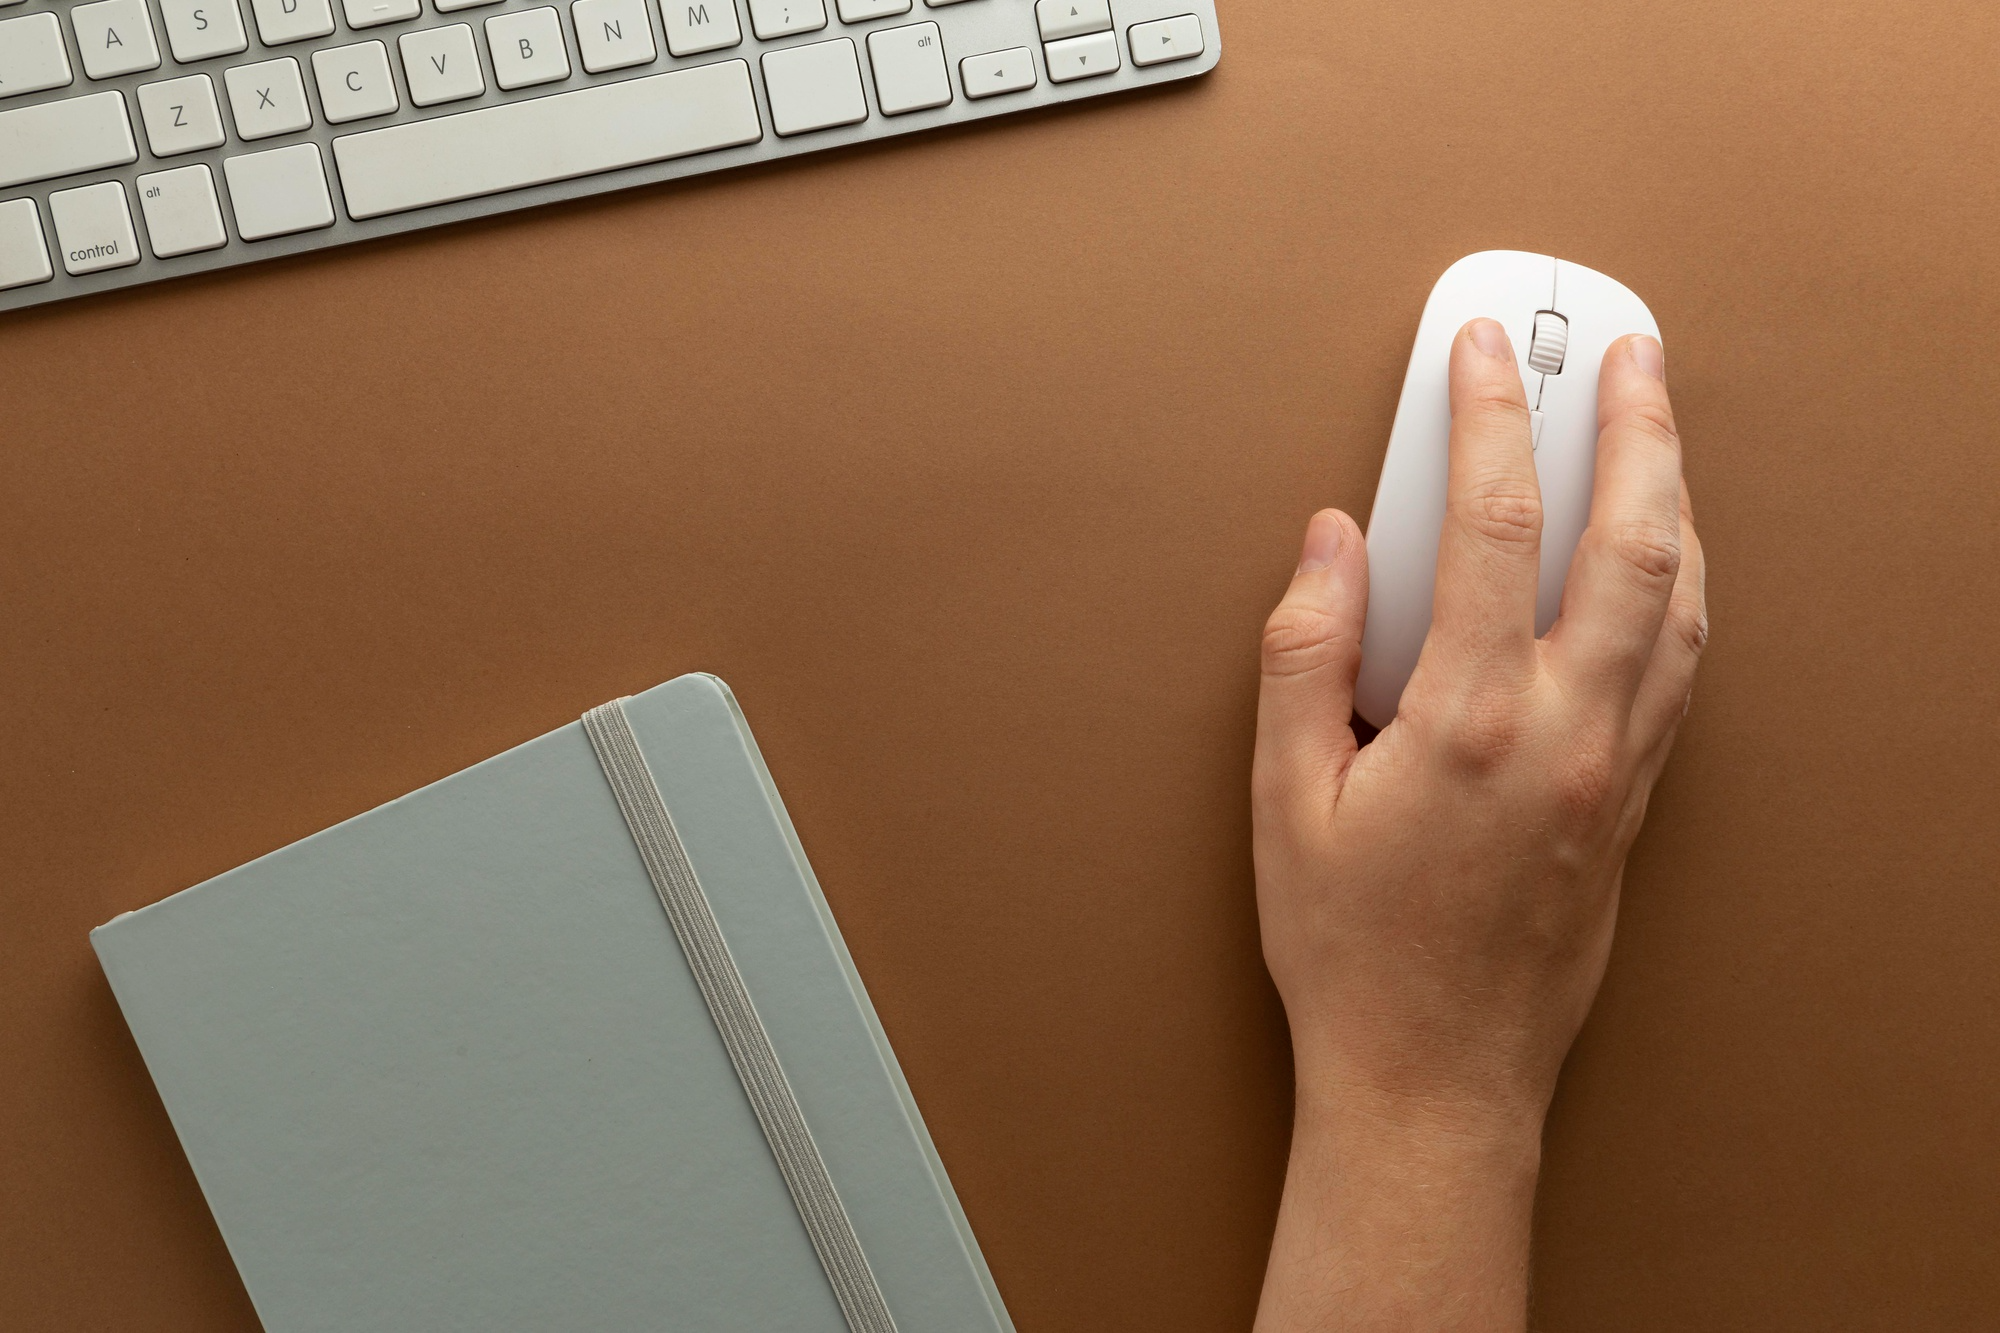 Hand holding wireless mouse on work desk